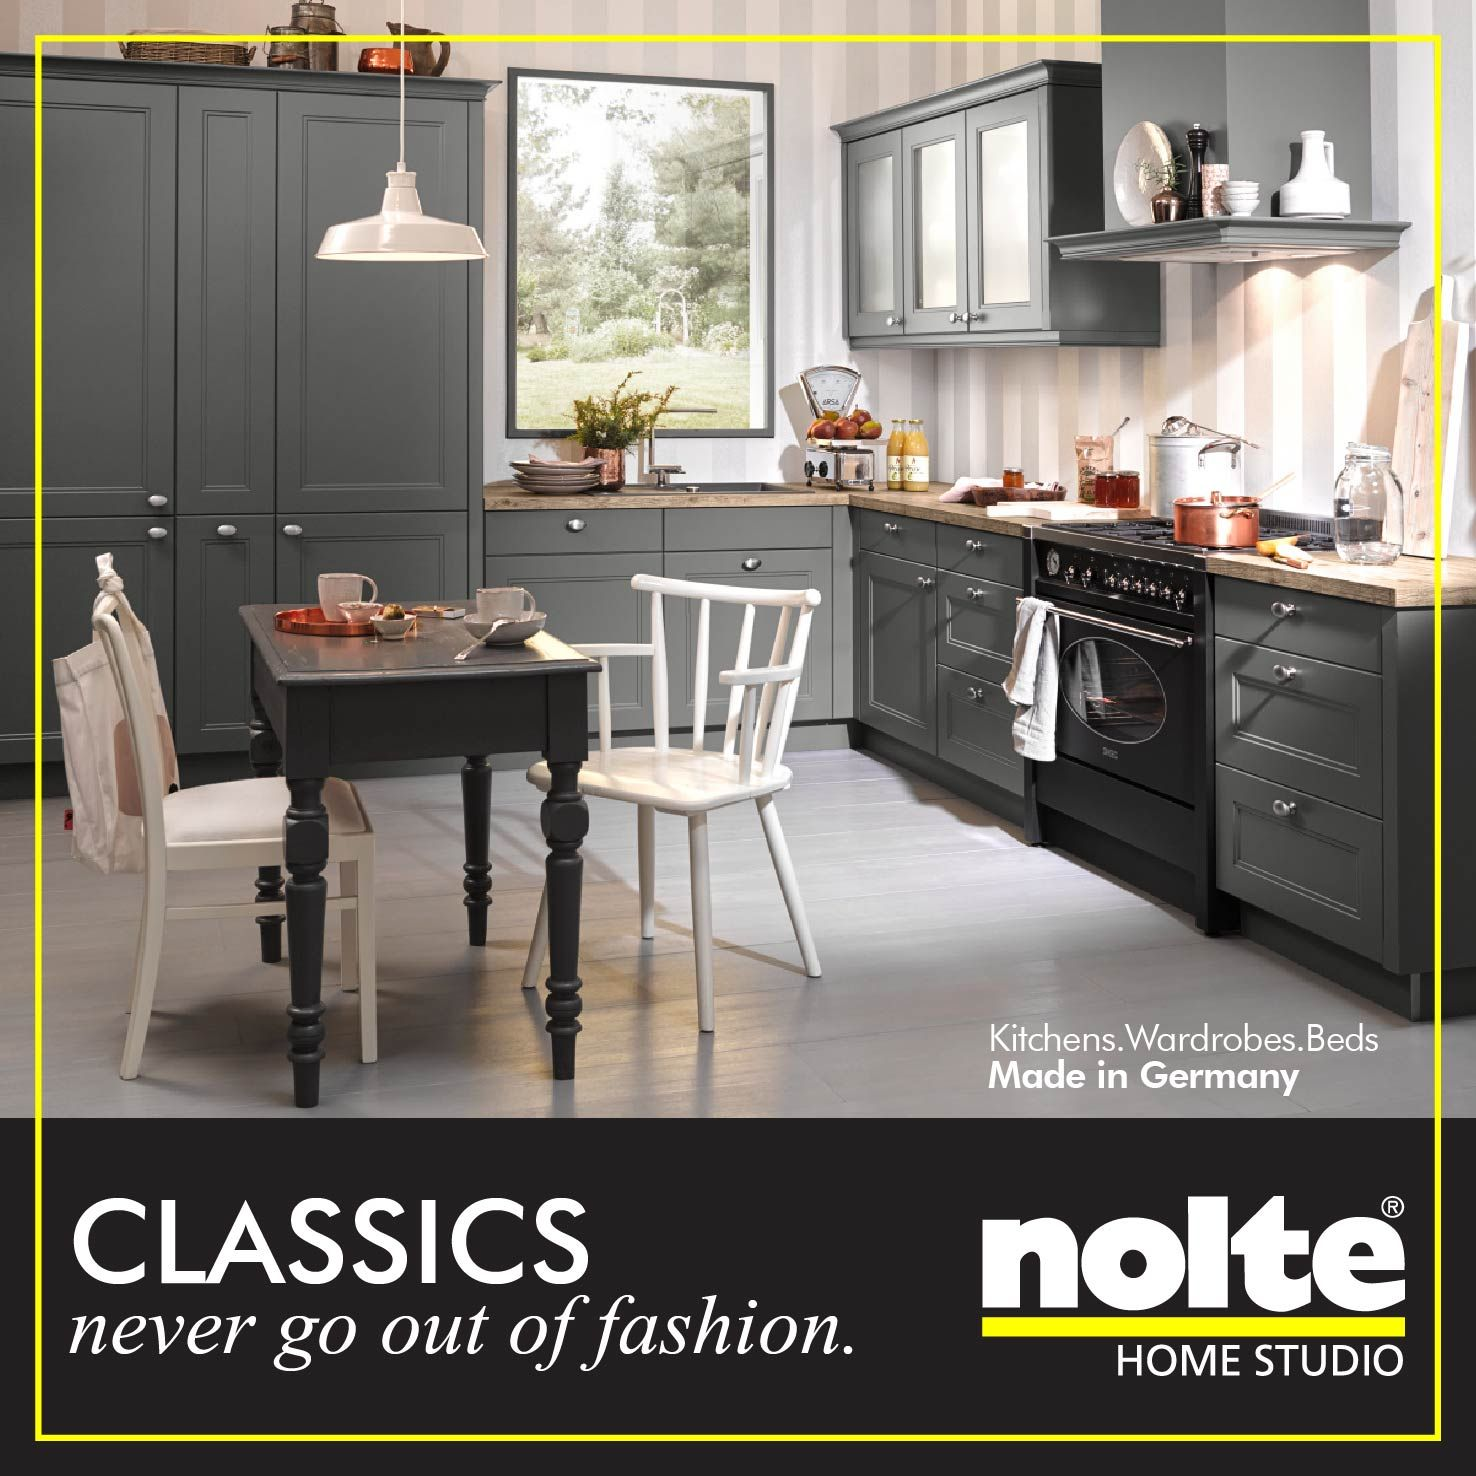 Pin By Nolte India On Nolte Kitchen Collection Pinterest Kitchen